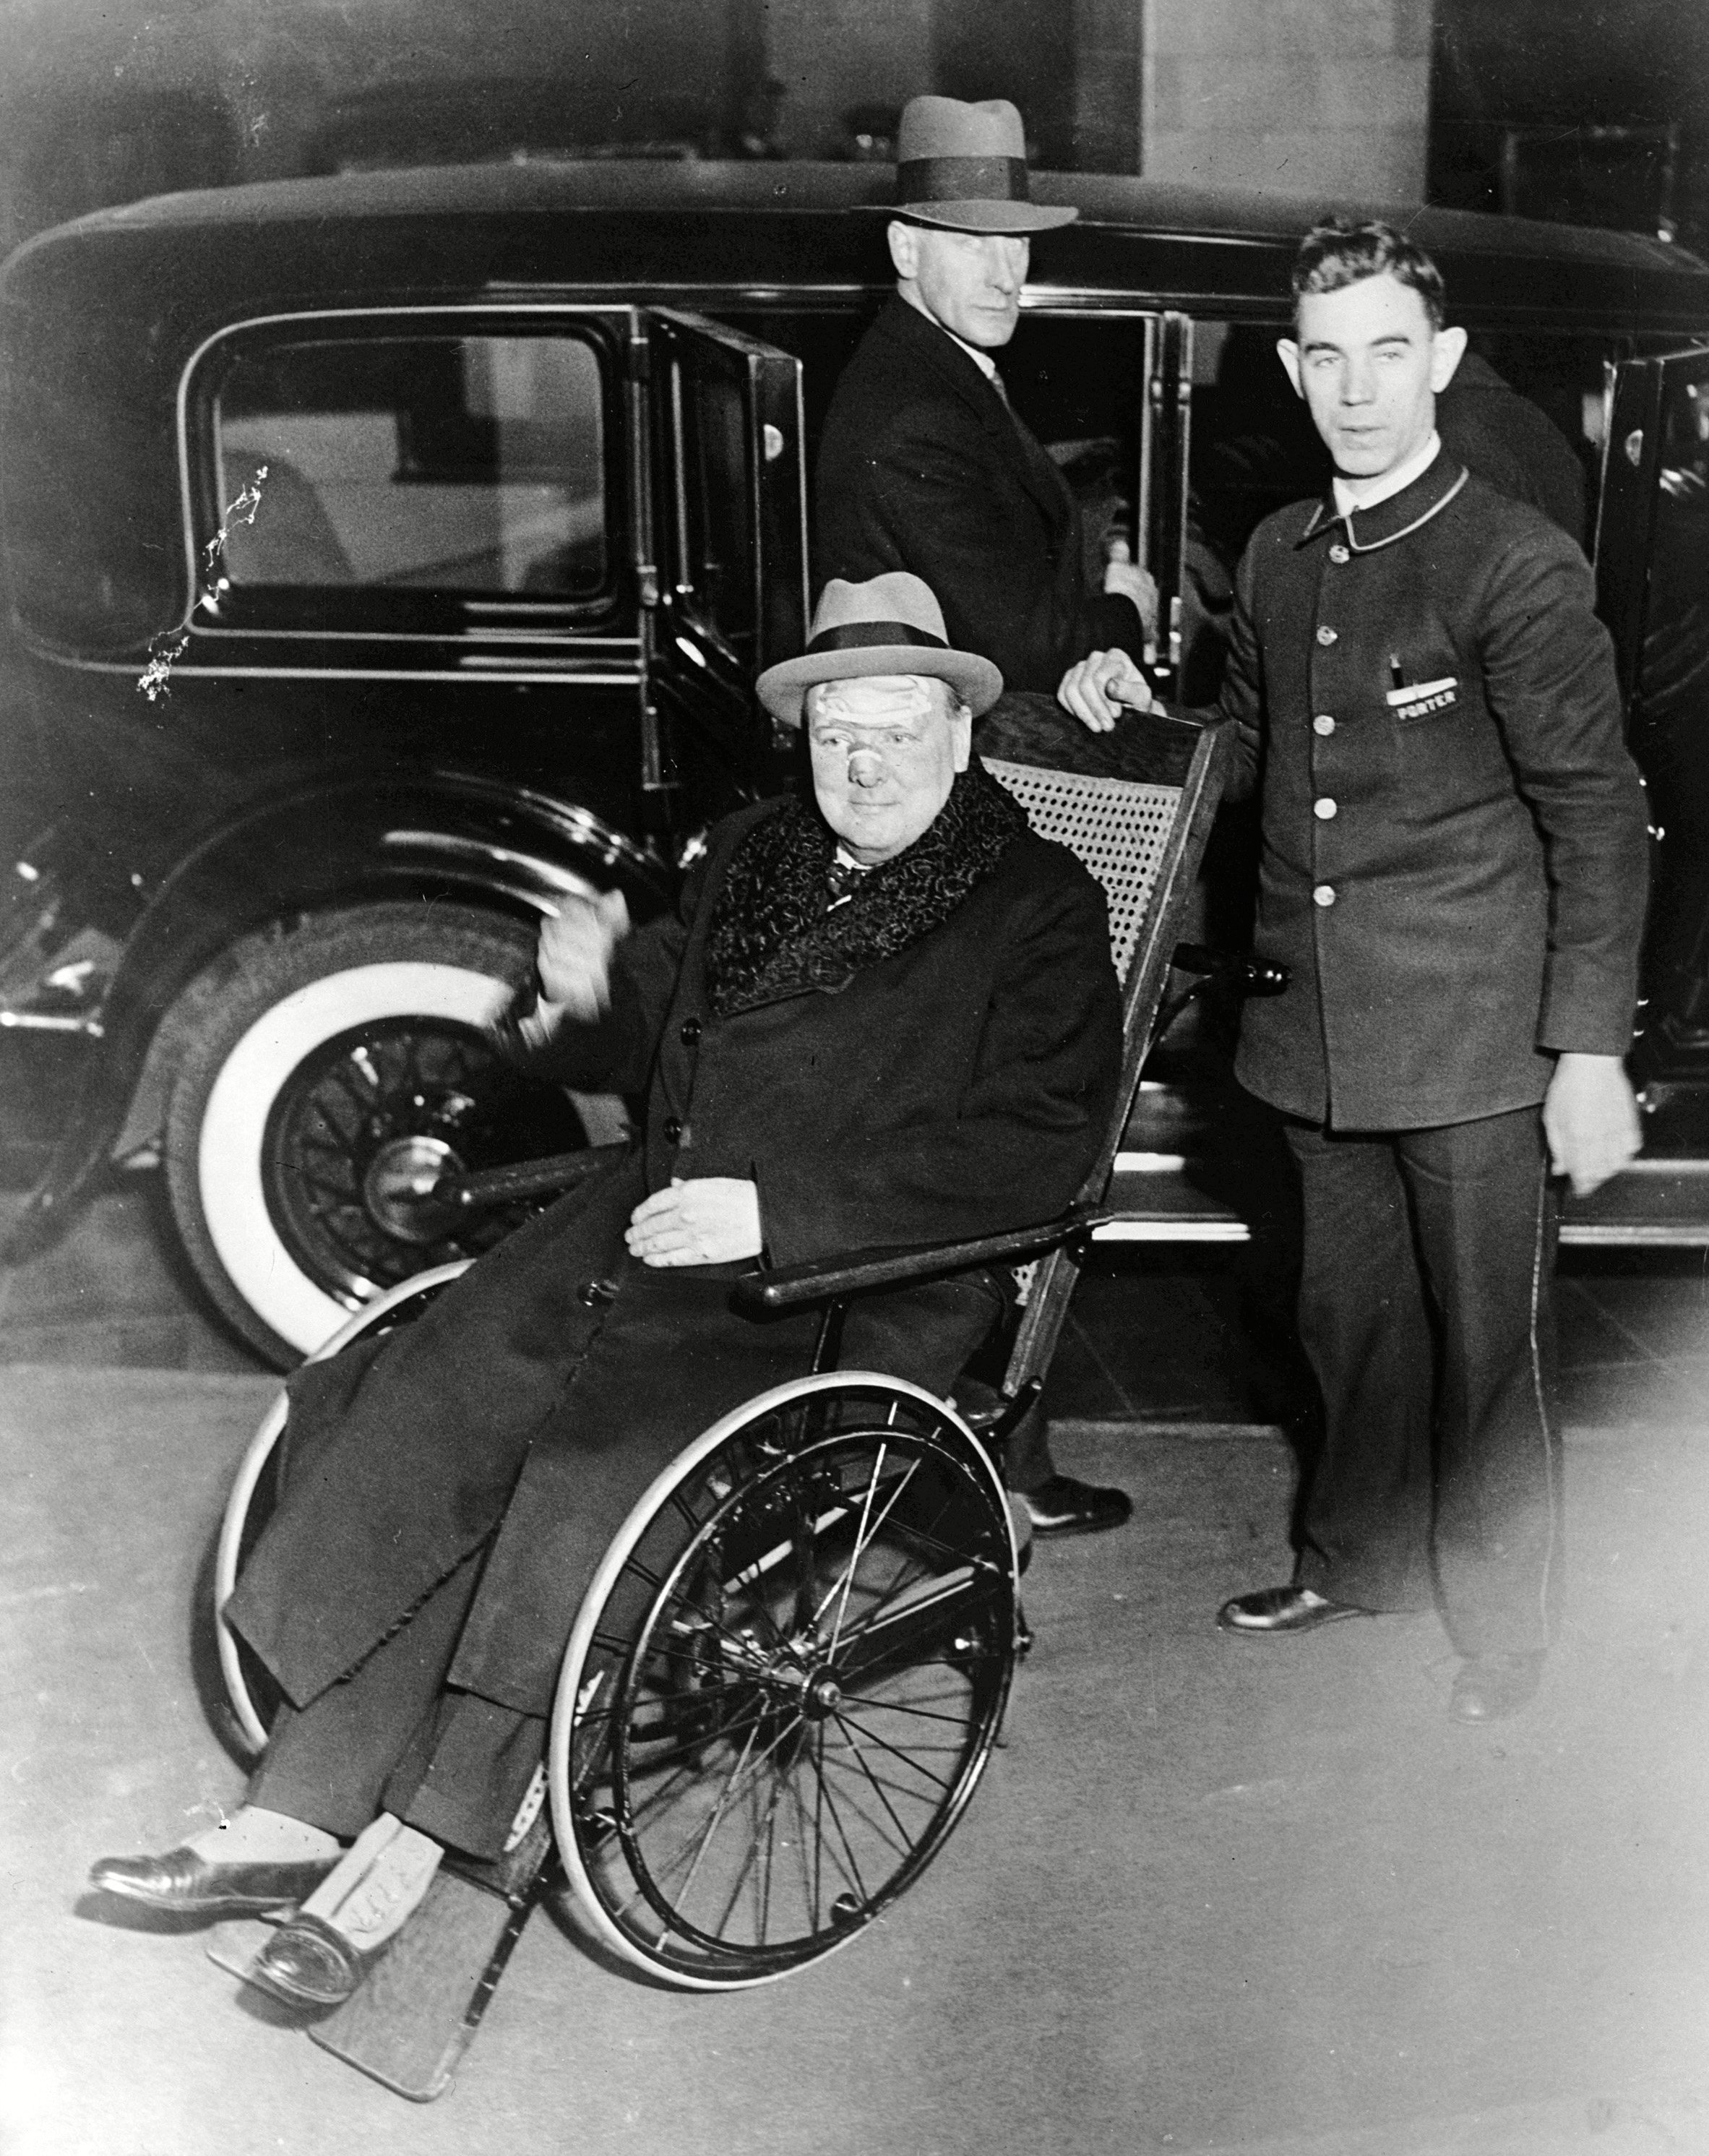 Winston Churchill leaves the Lenox Hill hospital, New York, in a bath chair with bandages on his face. Churchill is recovering from an accident in which he was knocked down by a taxi driver in Fifth Avenue November 3 1931